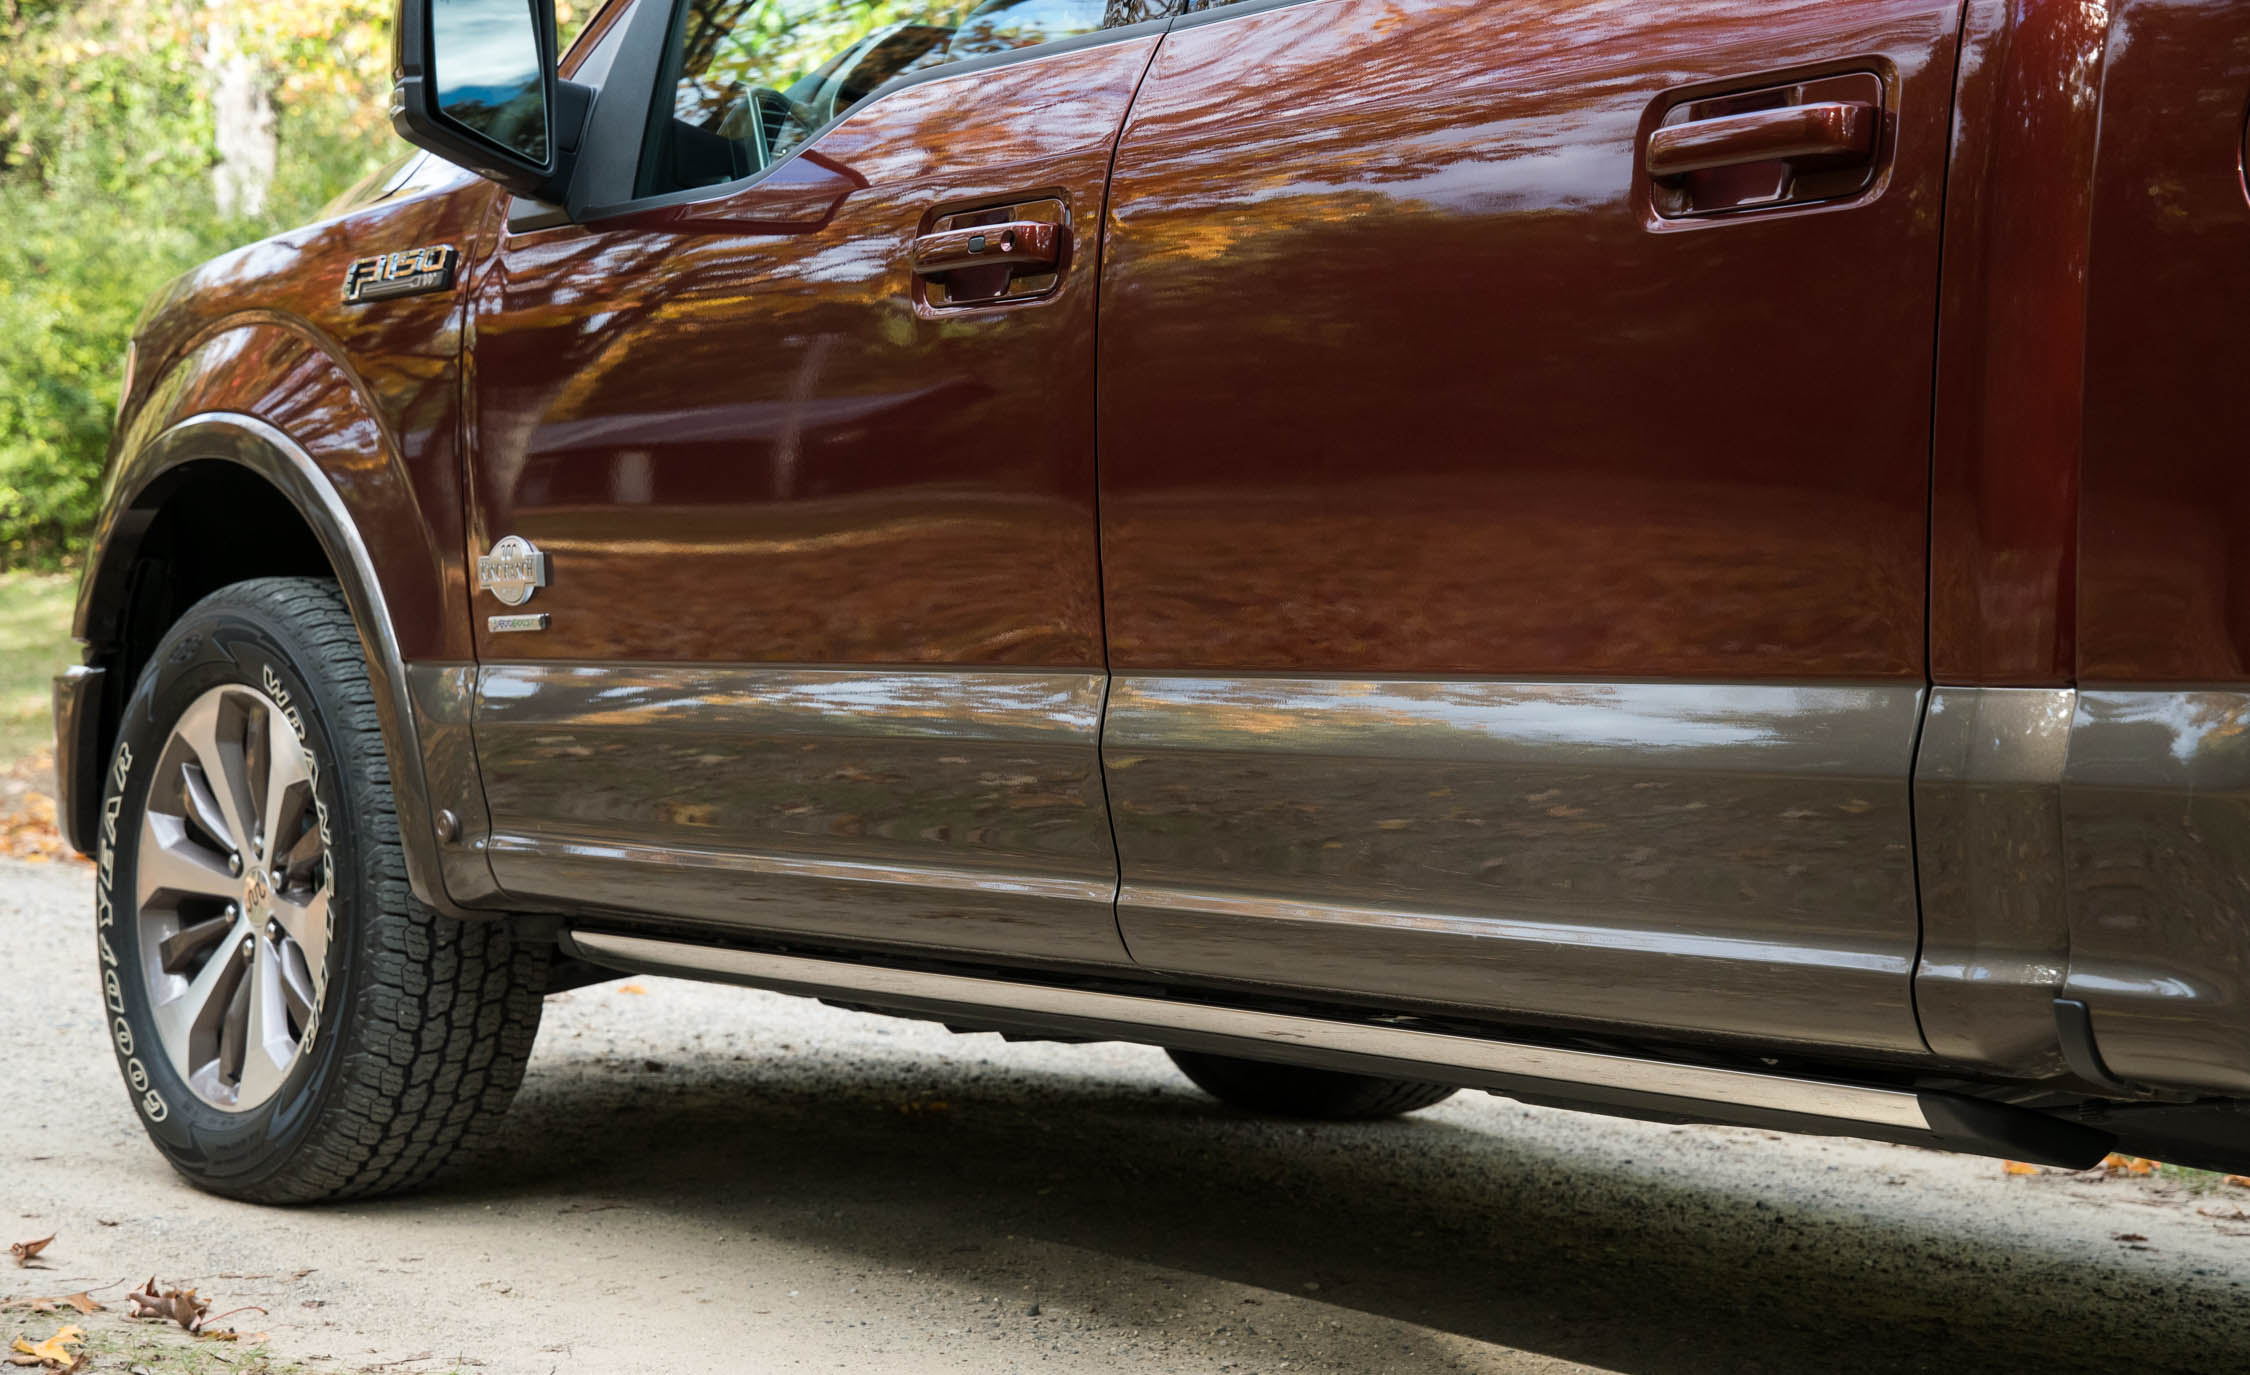 2017 Ford F 150 King Ranch Exterior View Side Body (Photo 19 of 50)